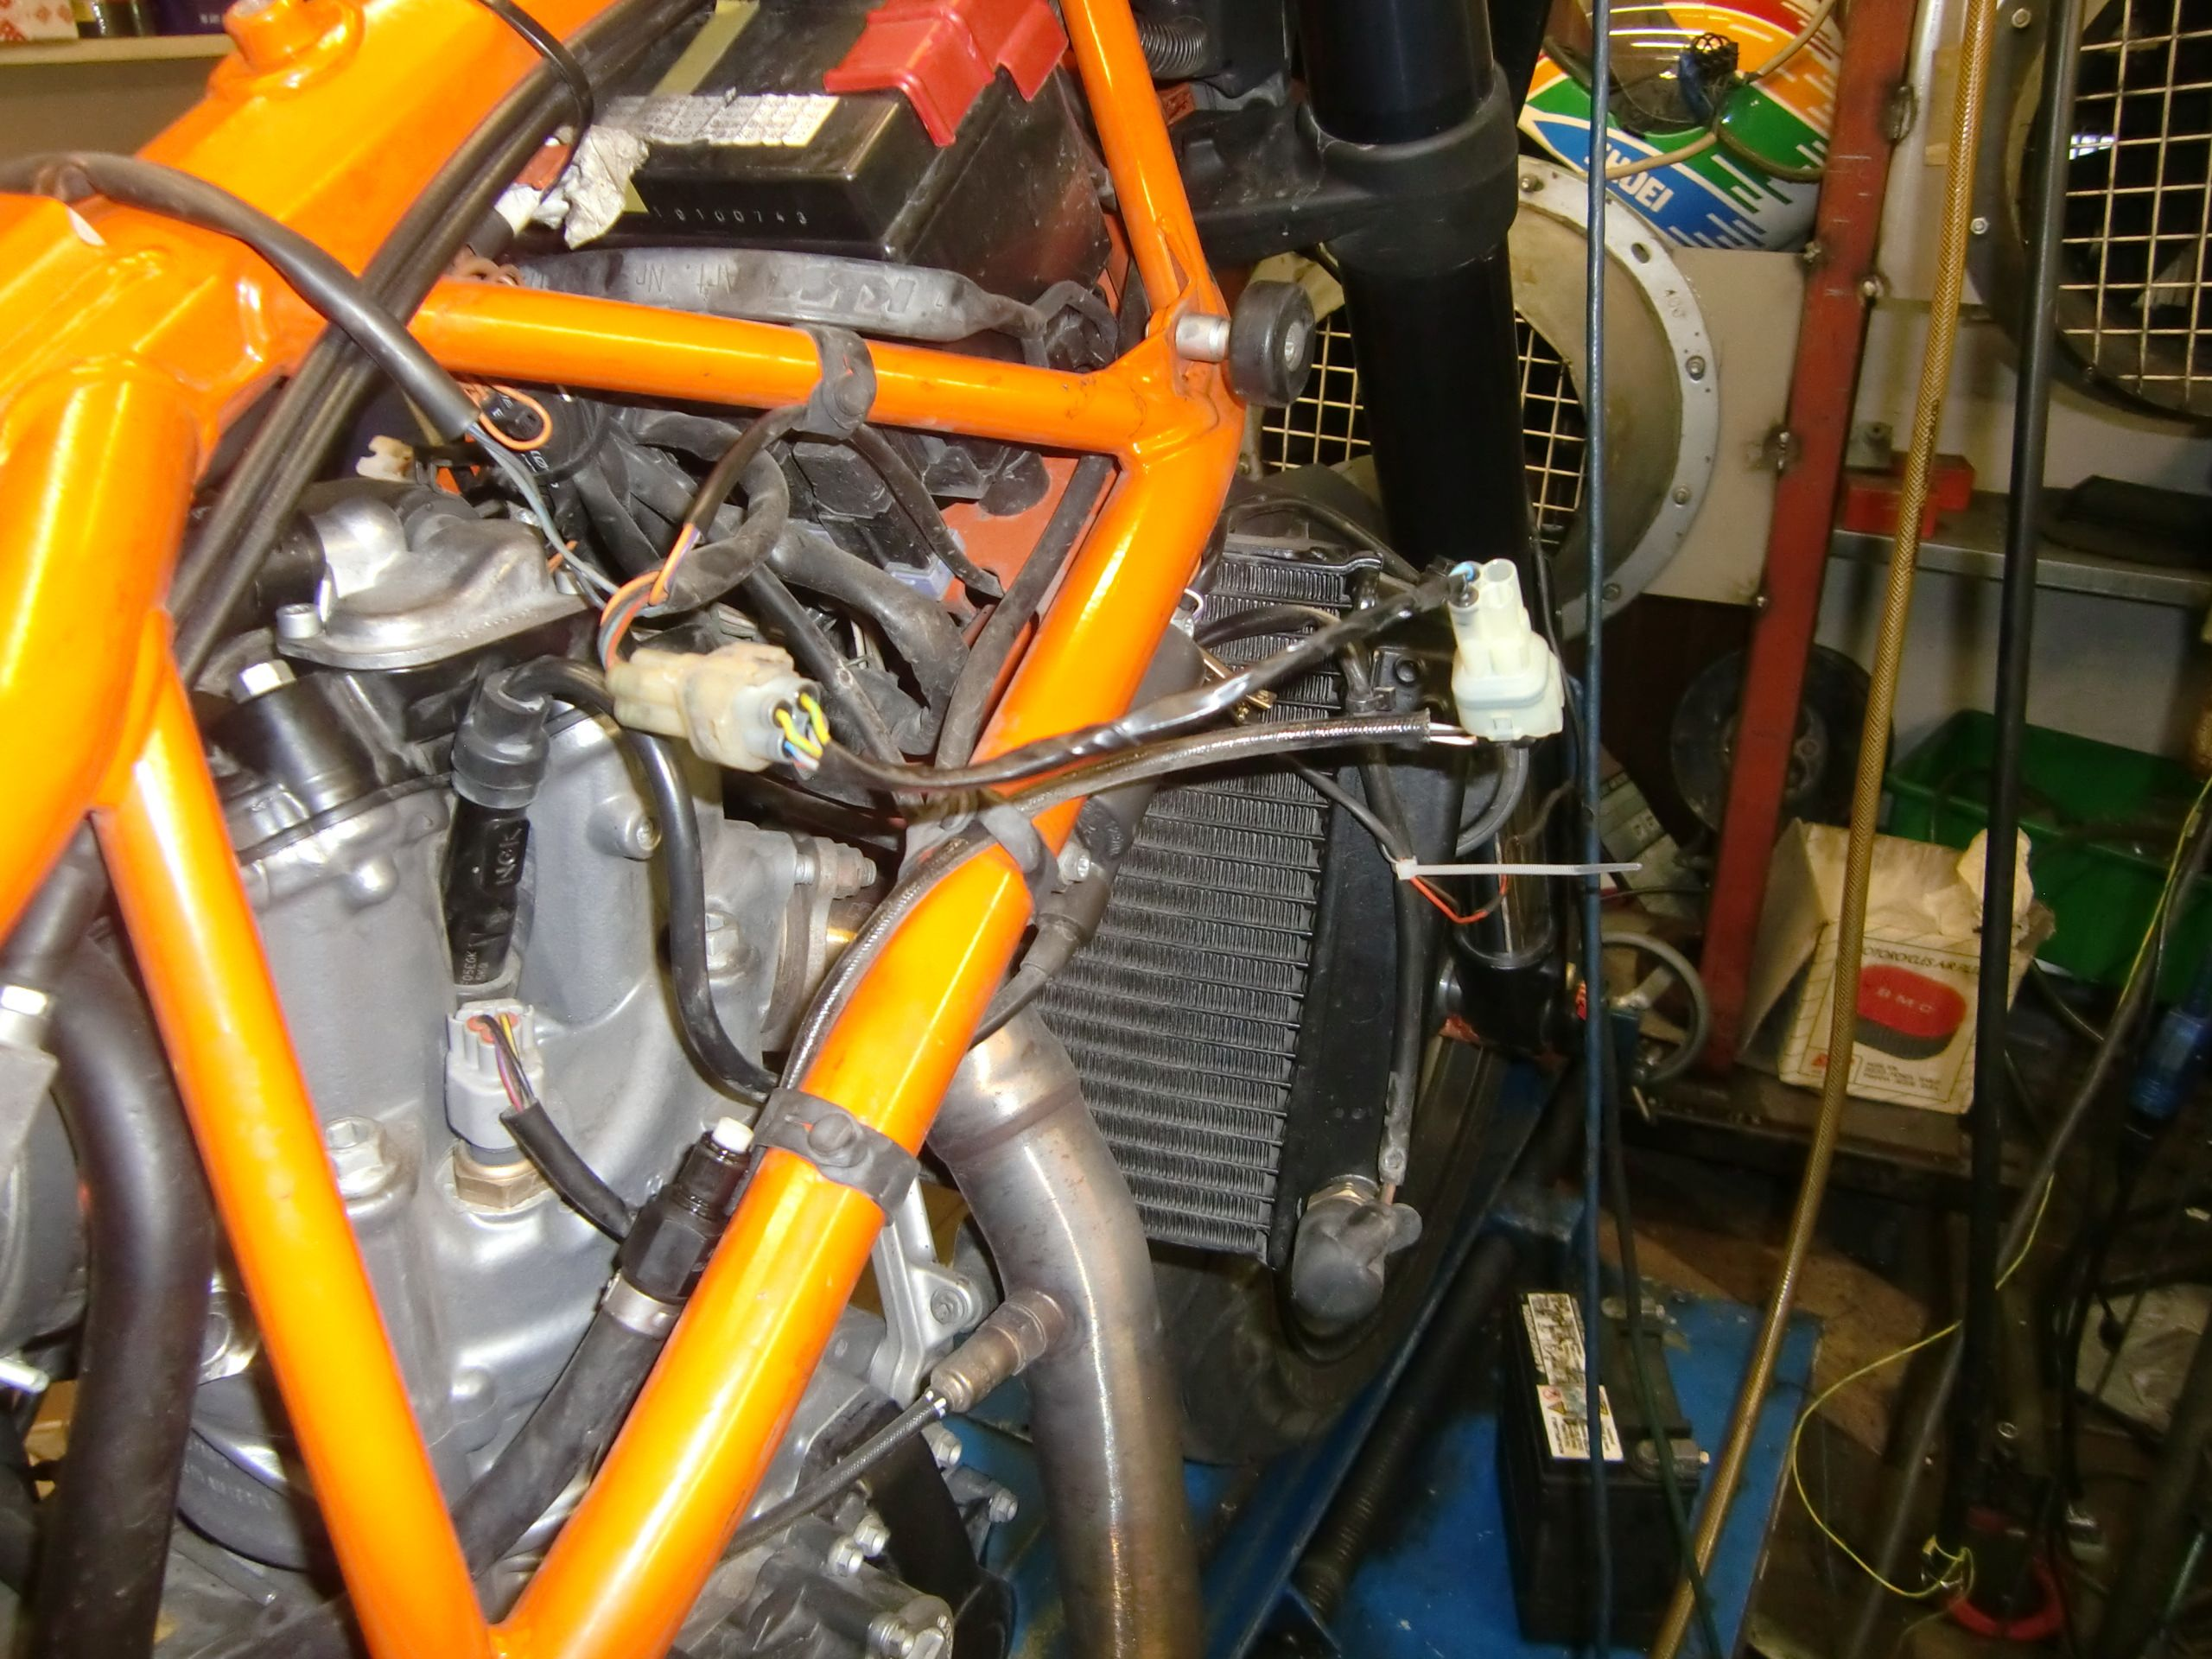 Ktm Superduke Air Airbox Mod